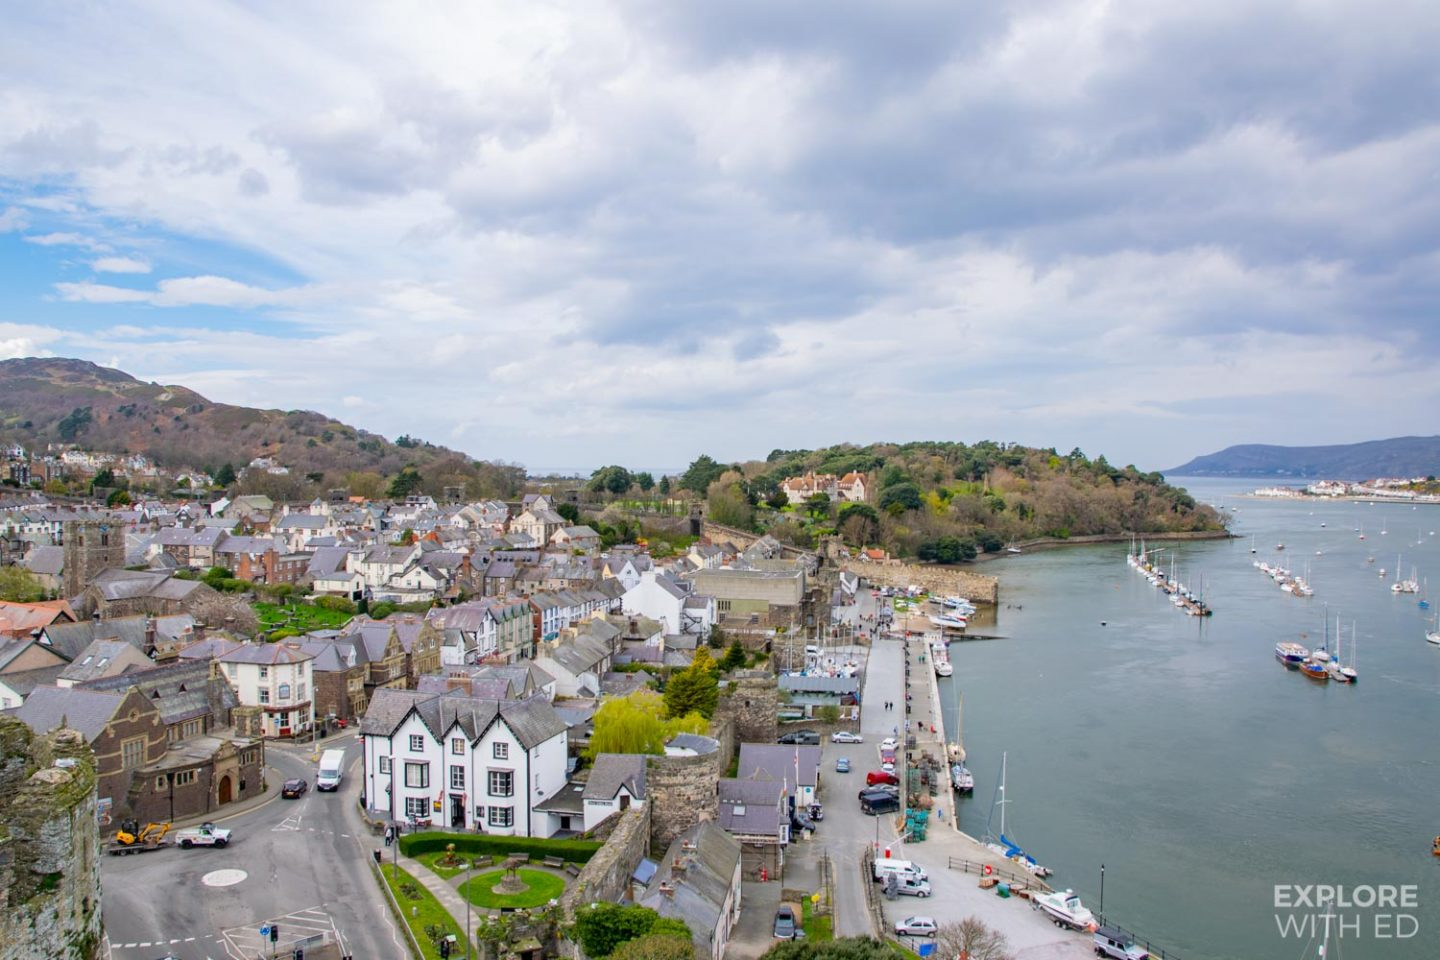 Town of Conwy, north Wales